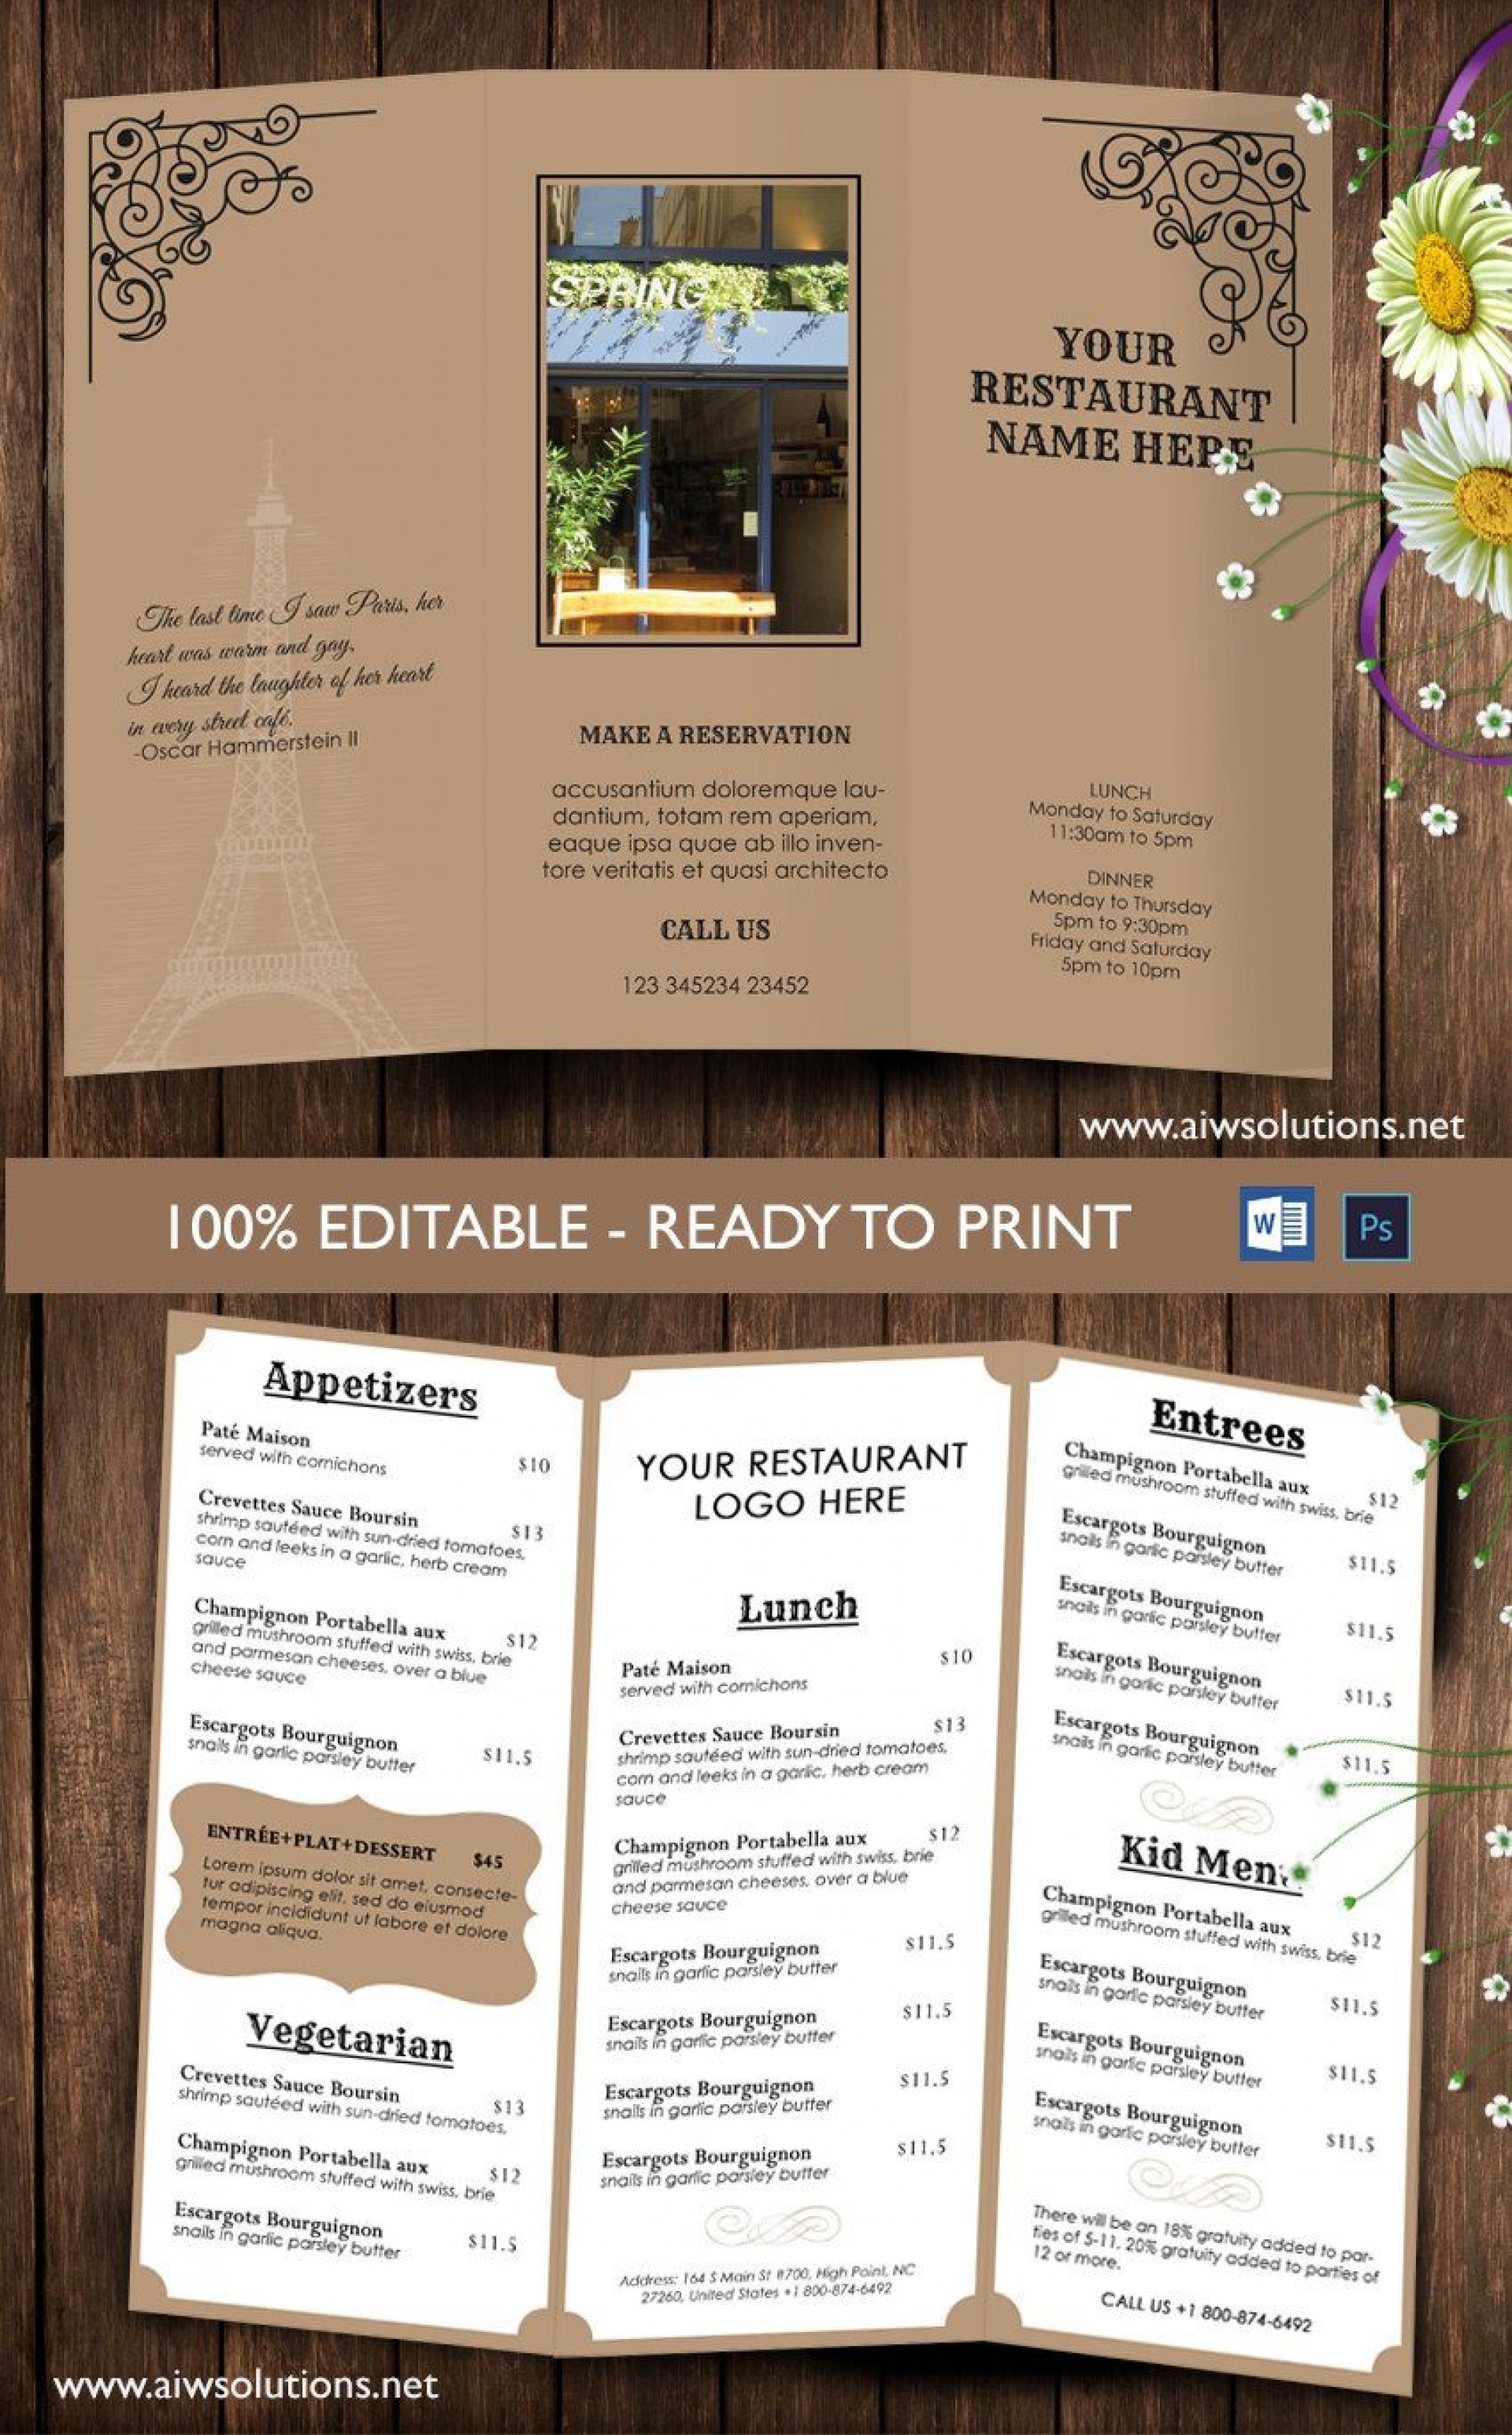 009 Unforgettable Take Out Menu Template High Definition  Tri Fold Free Word Restaurant Away1920